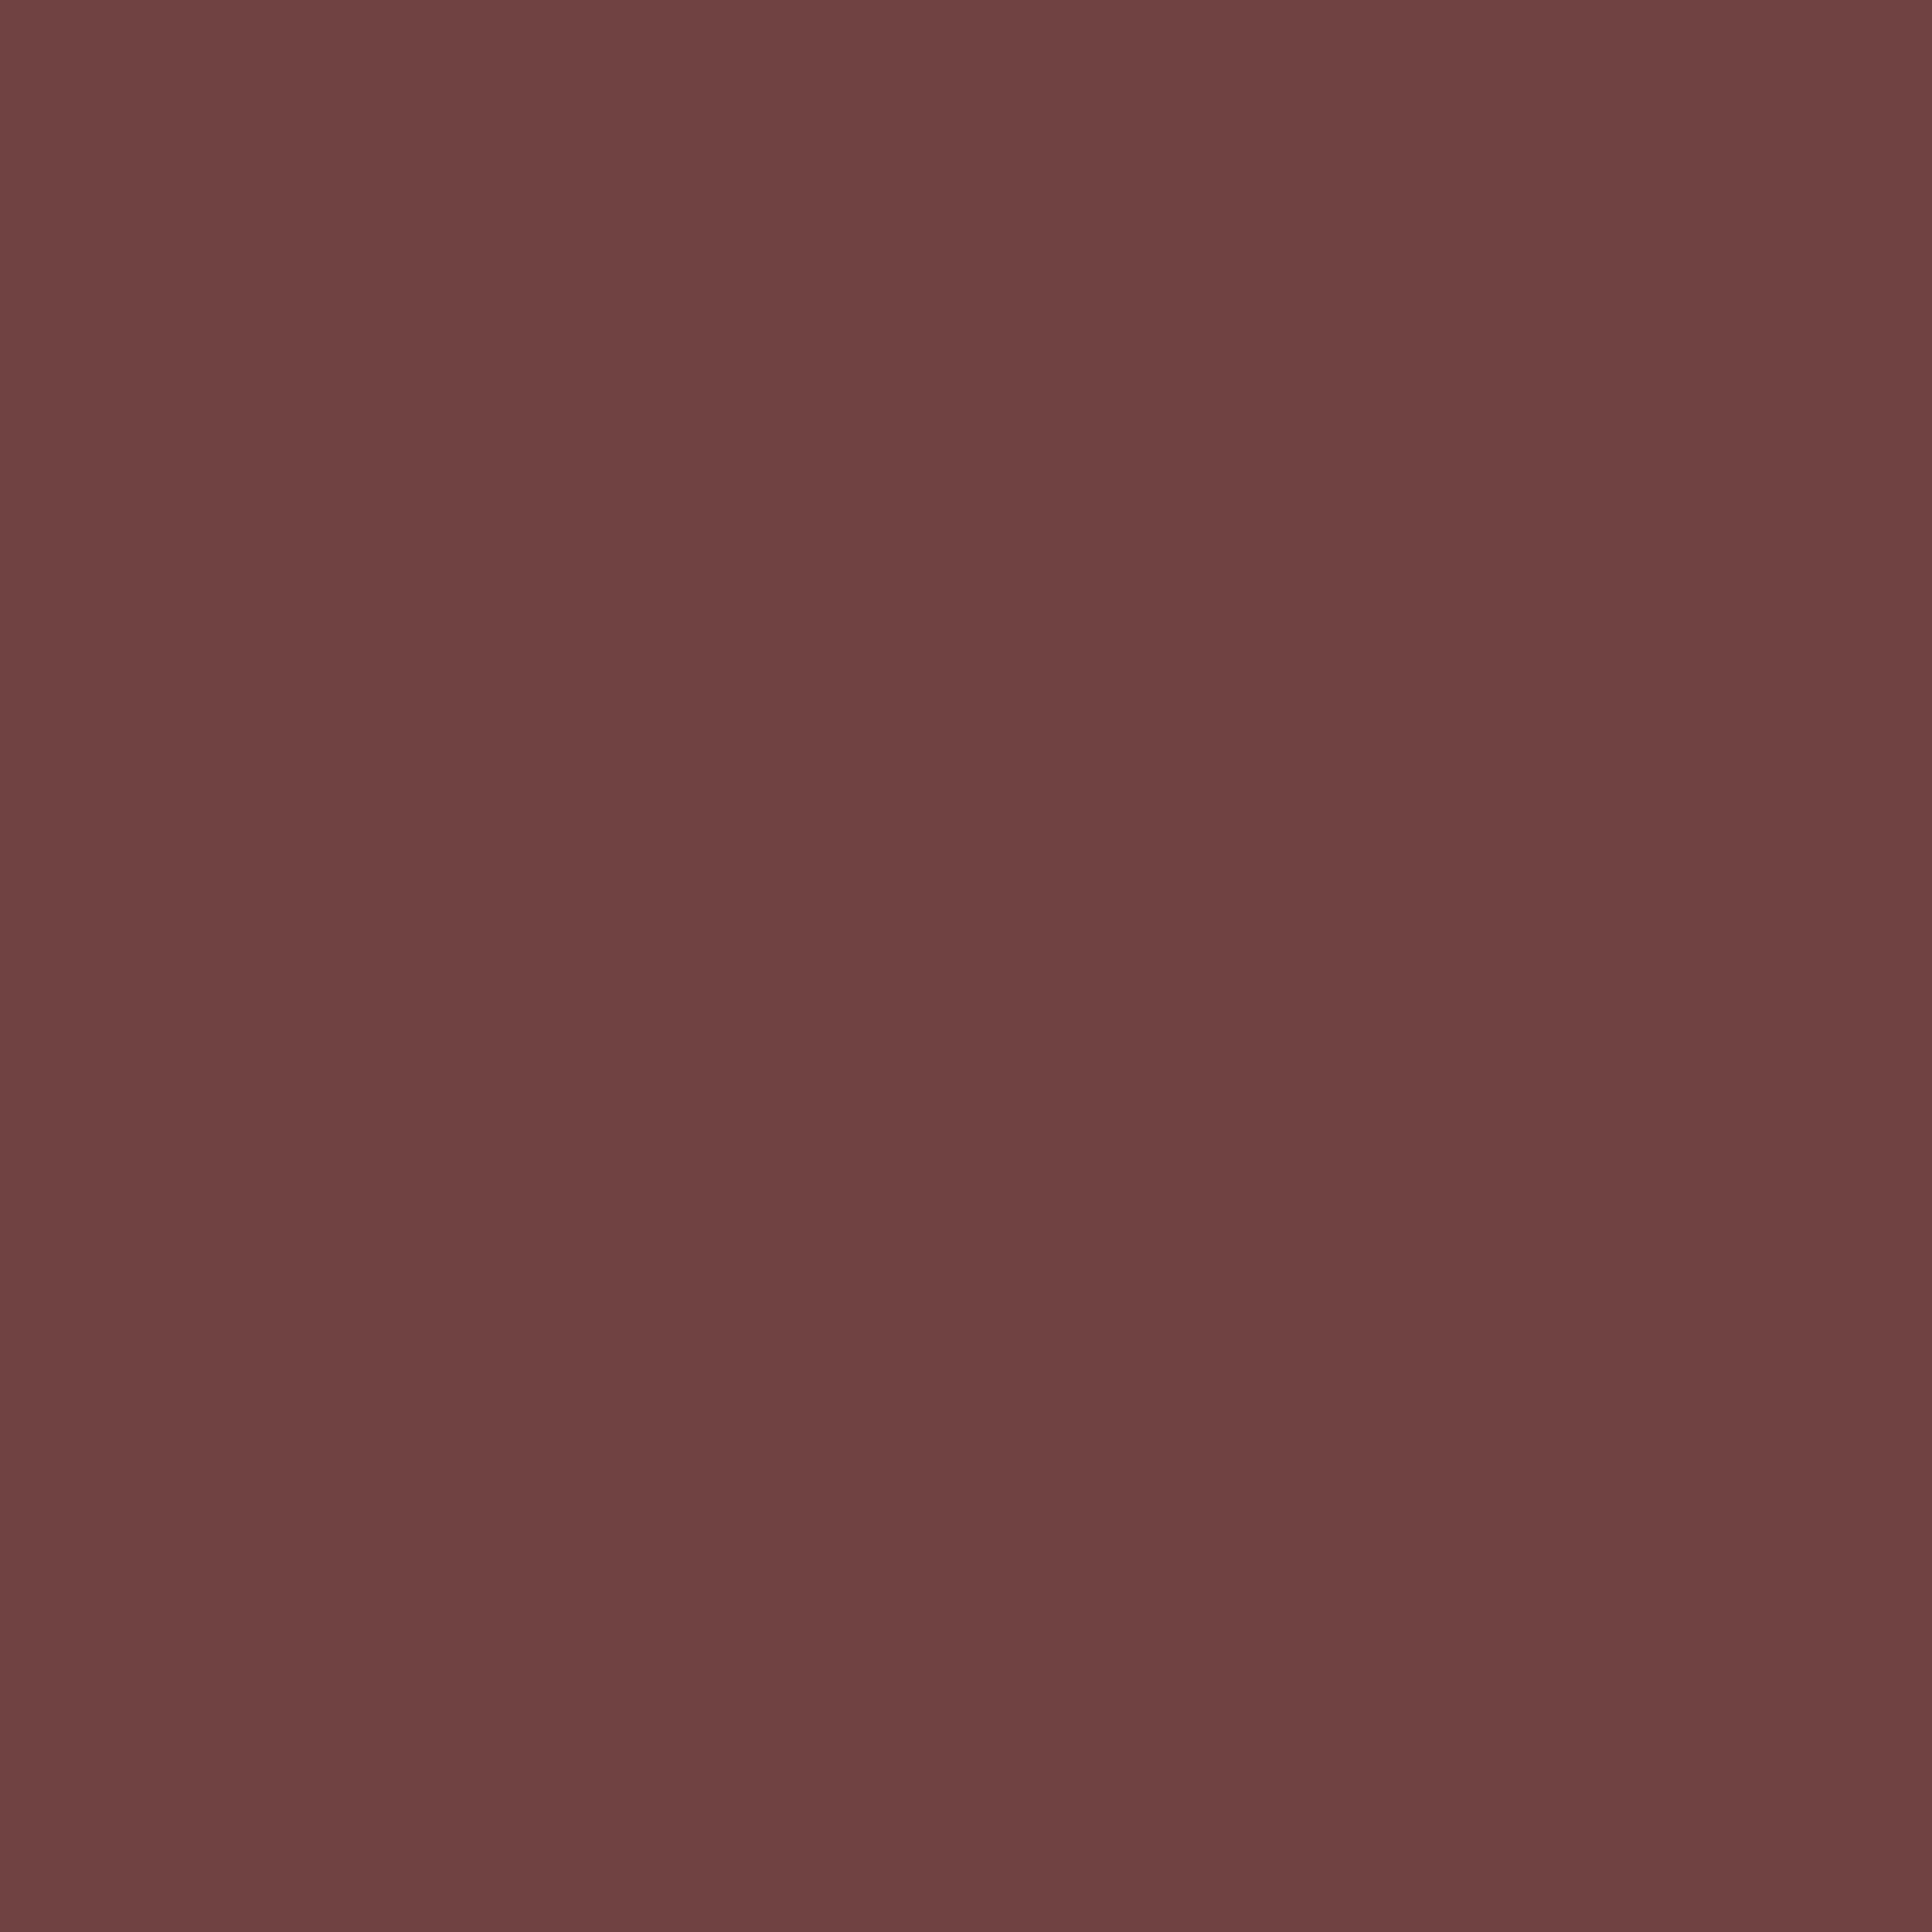 2048x2048 Deep Coffee Solid Color Background